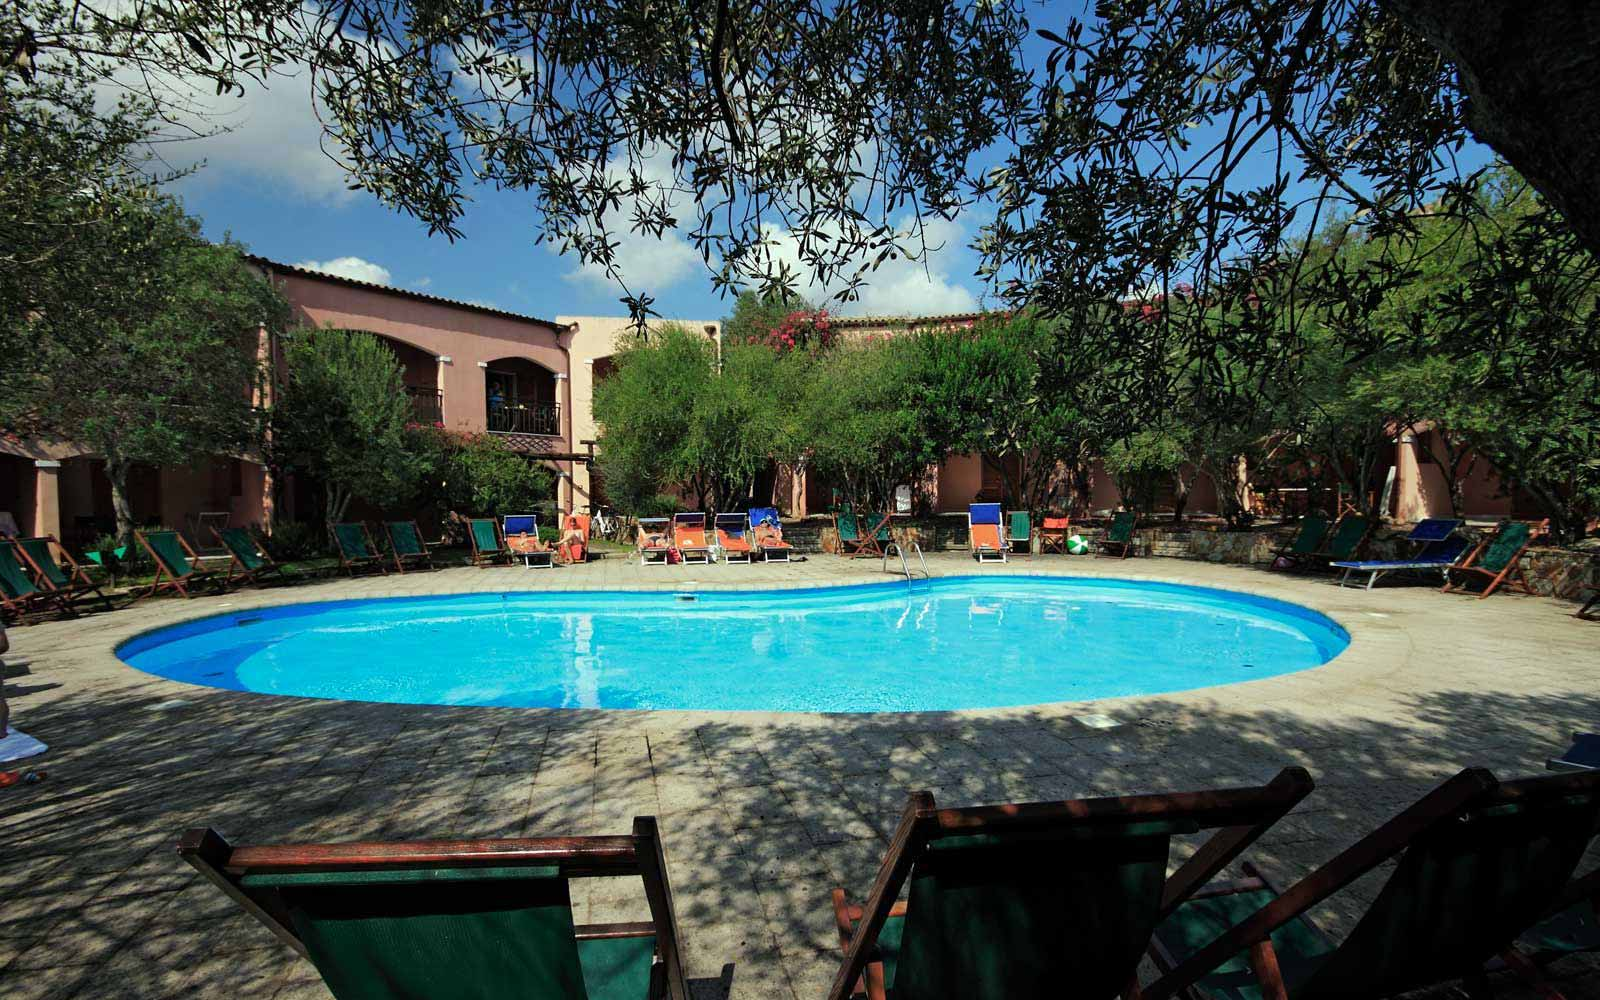 Swimming pool at Resort Cala Di Falco La Rotonda Residence